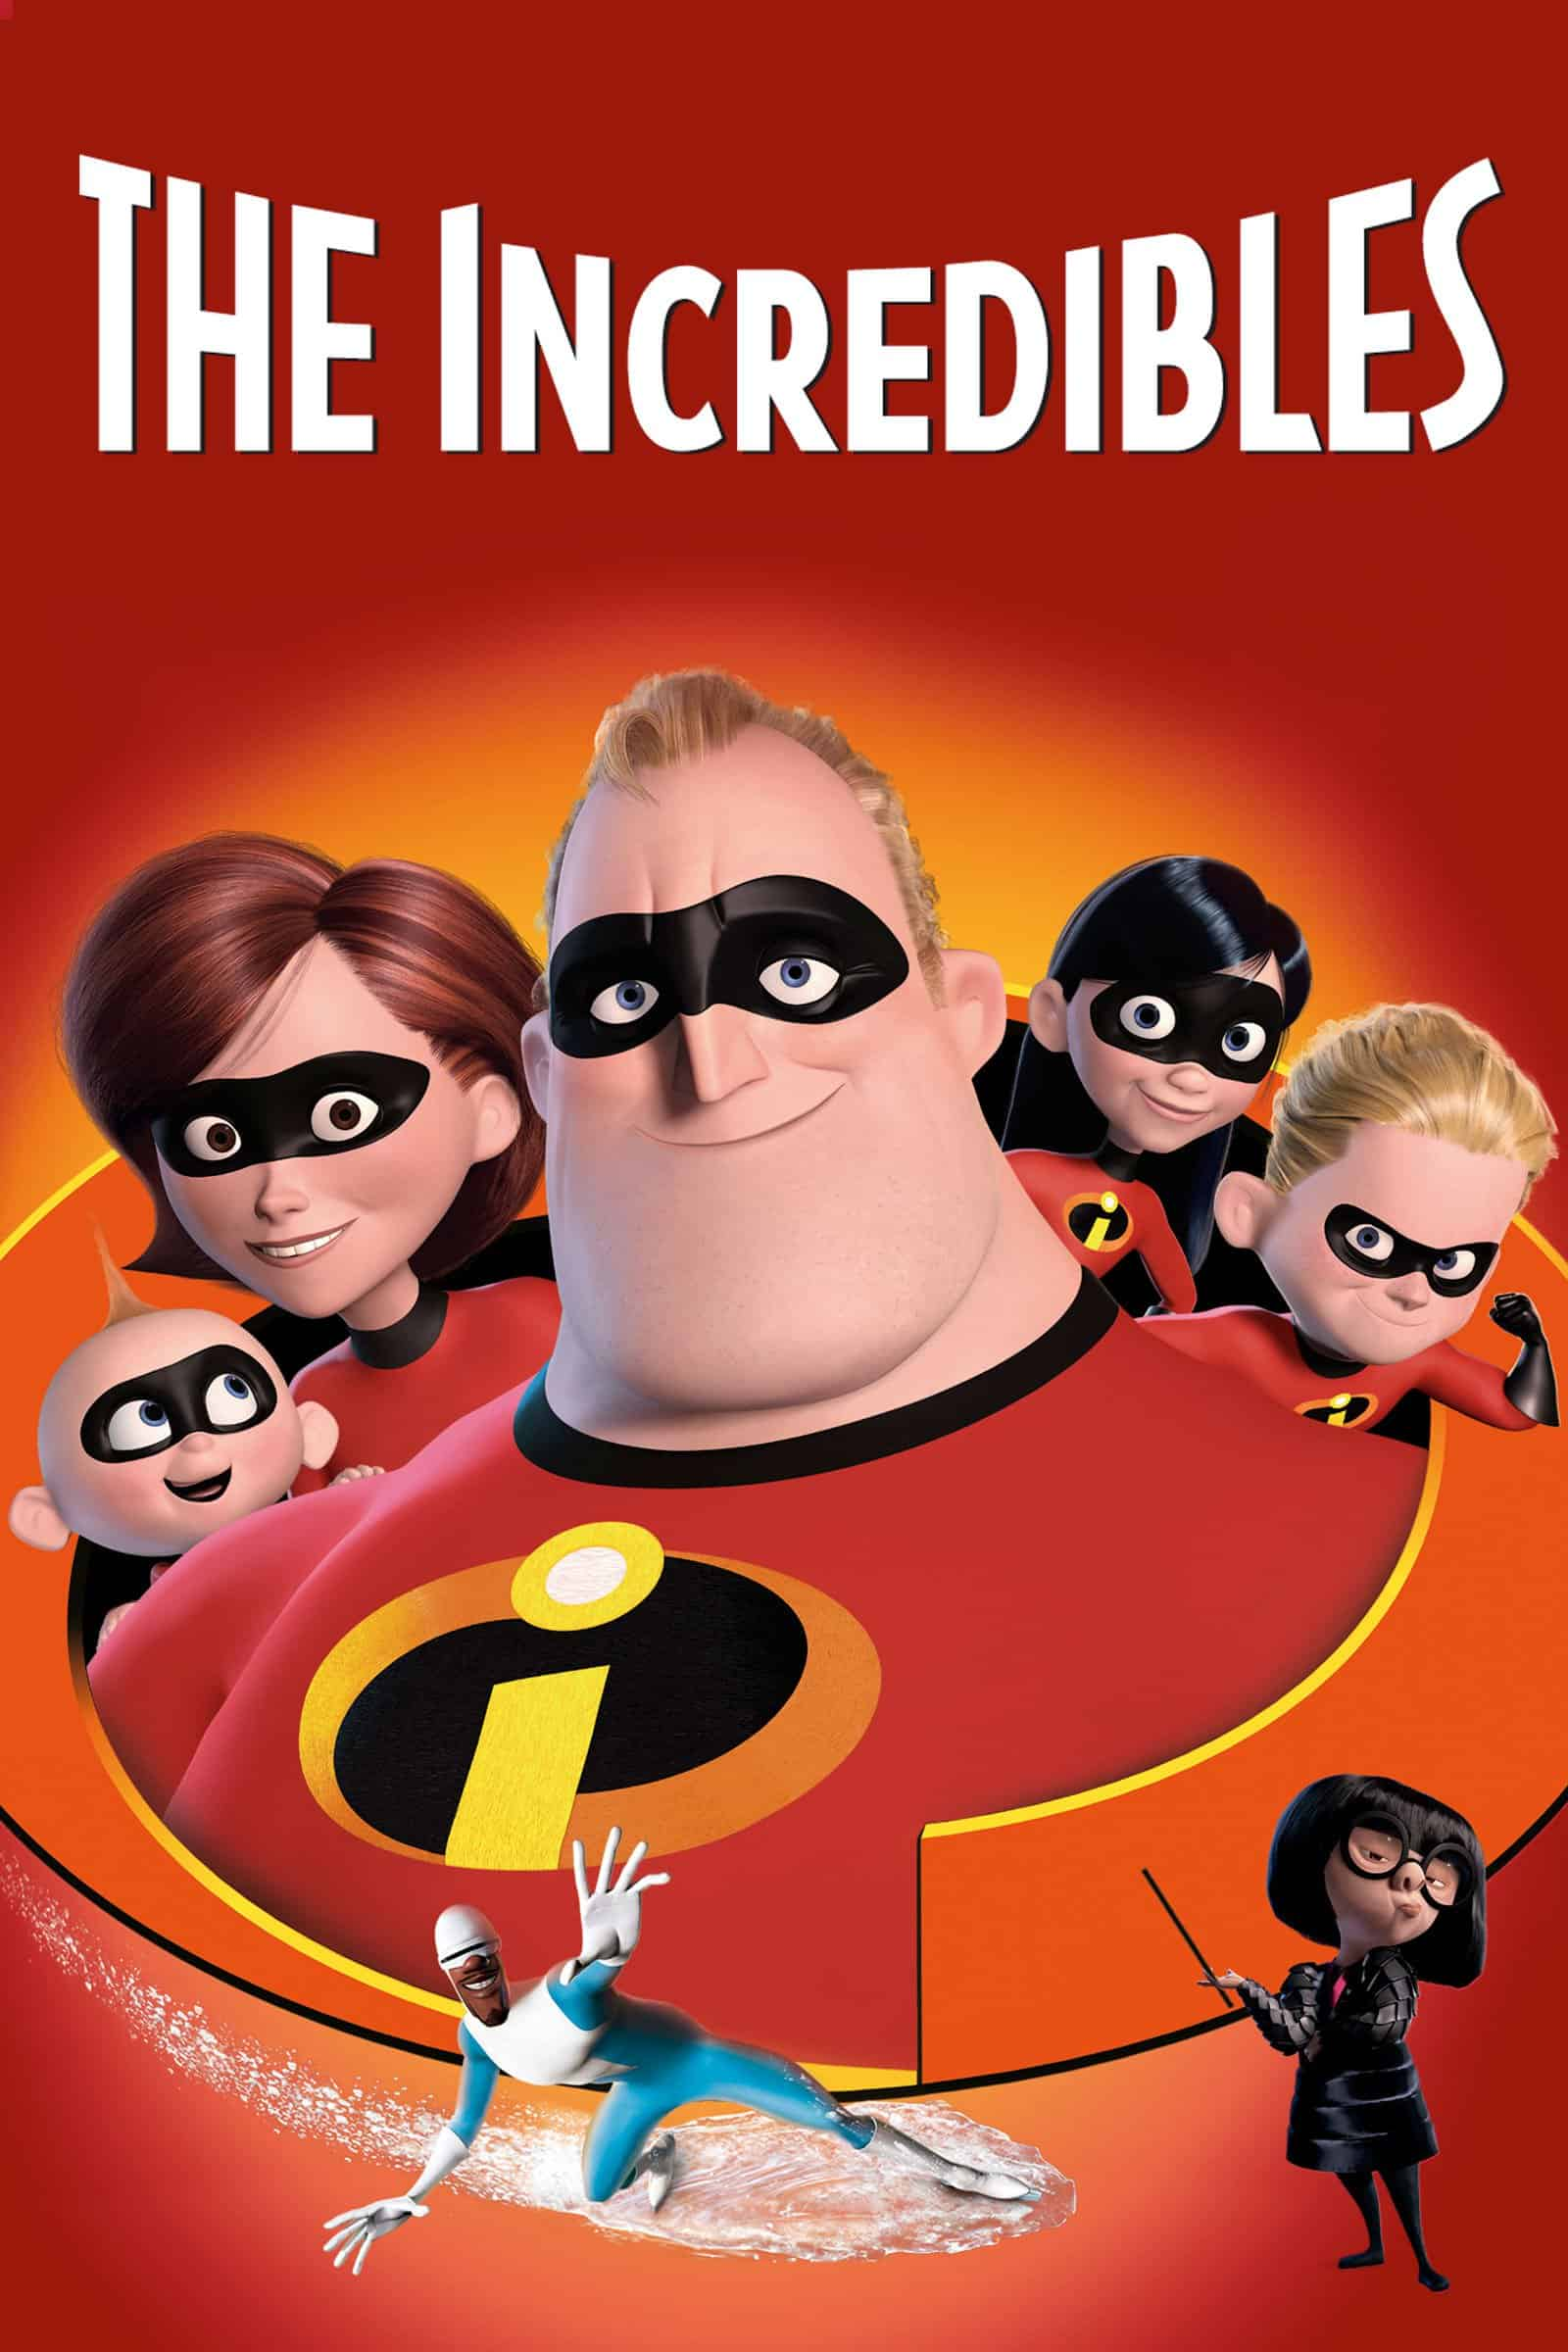 The Incredibles, 2004